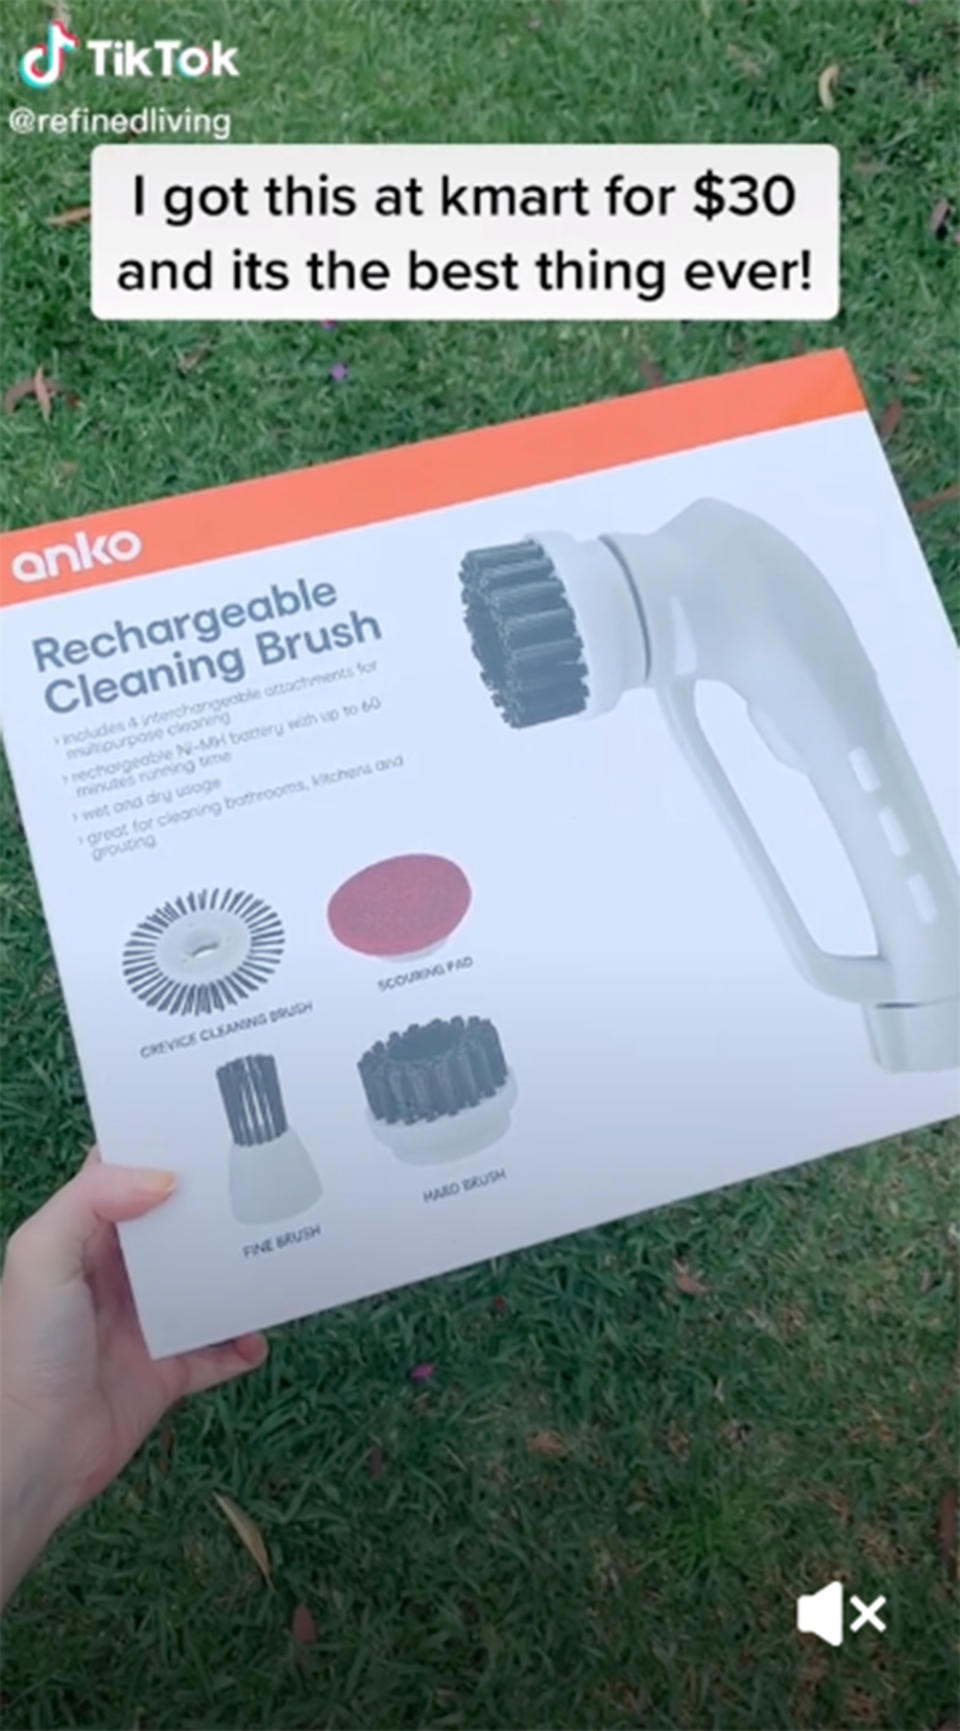 Kmart's 'Rechargeable Cleaning Brush' packaging